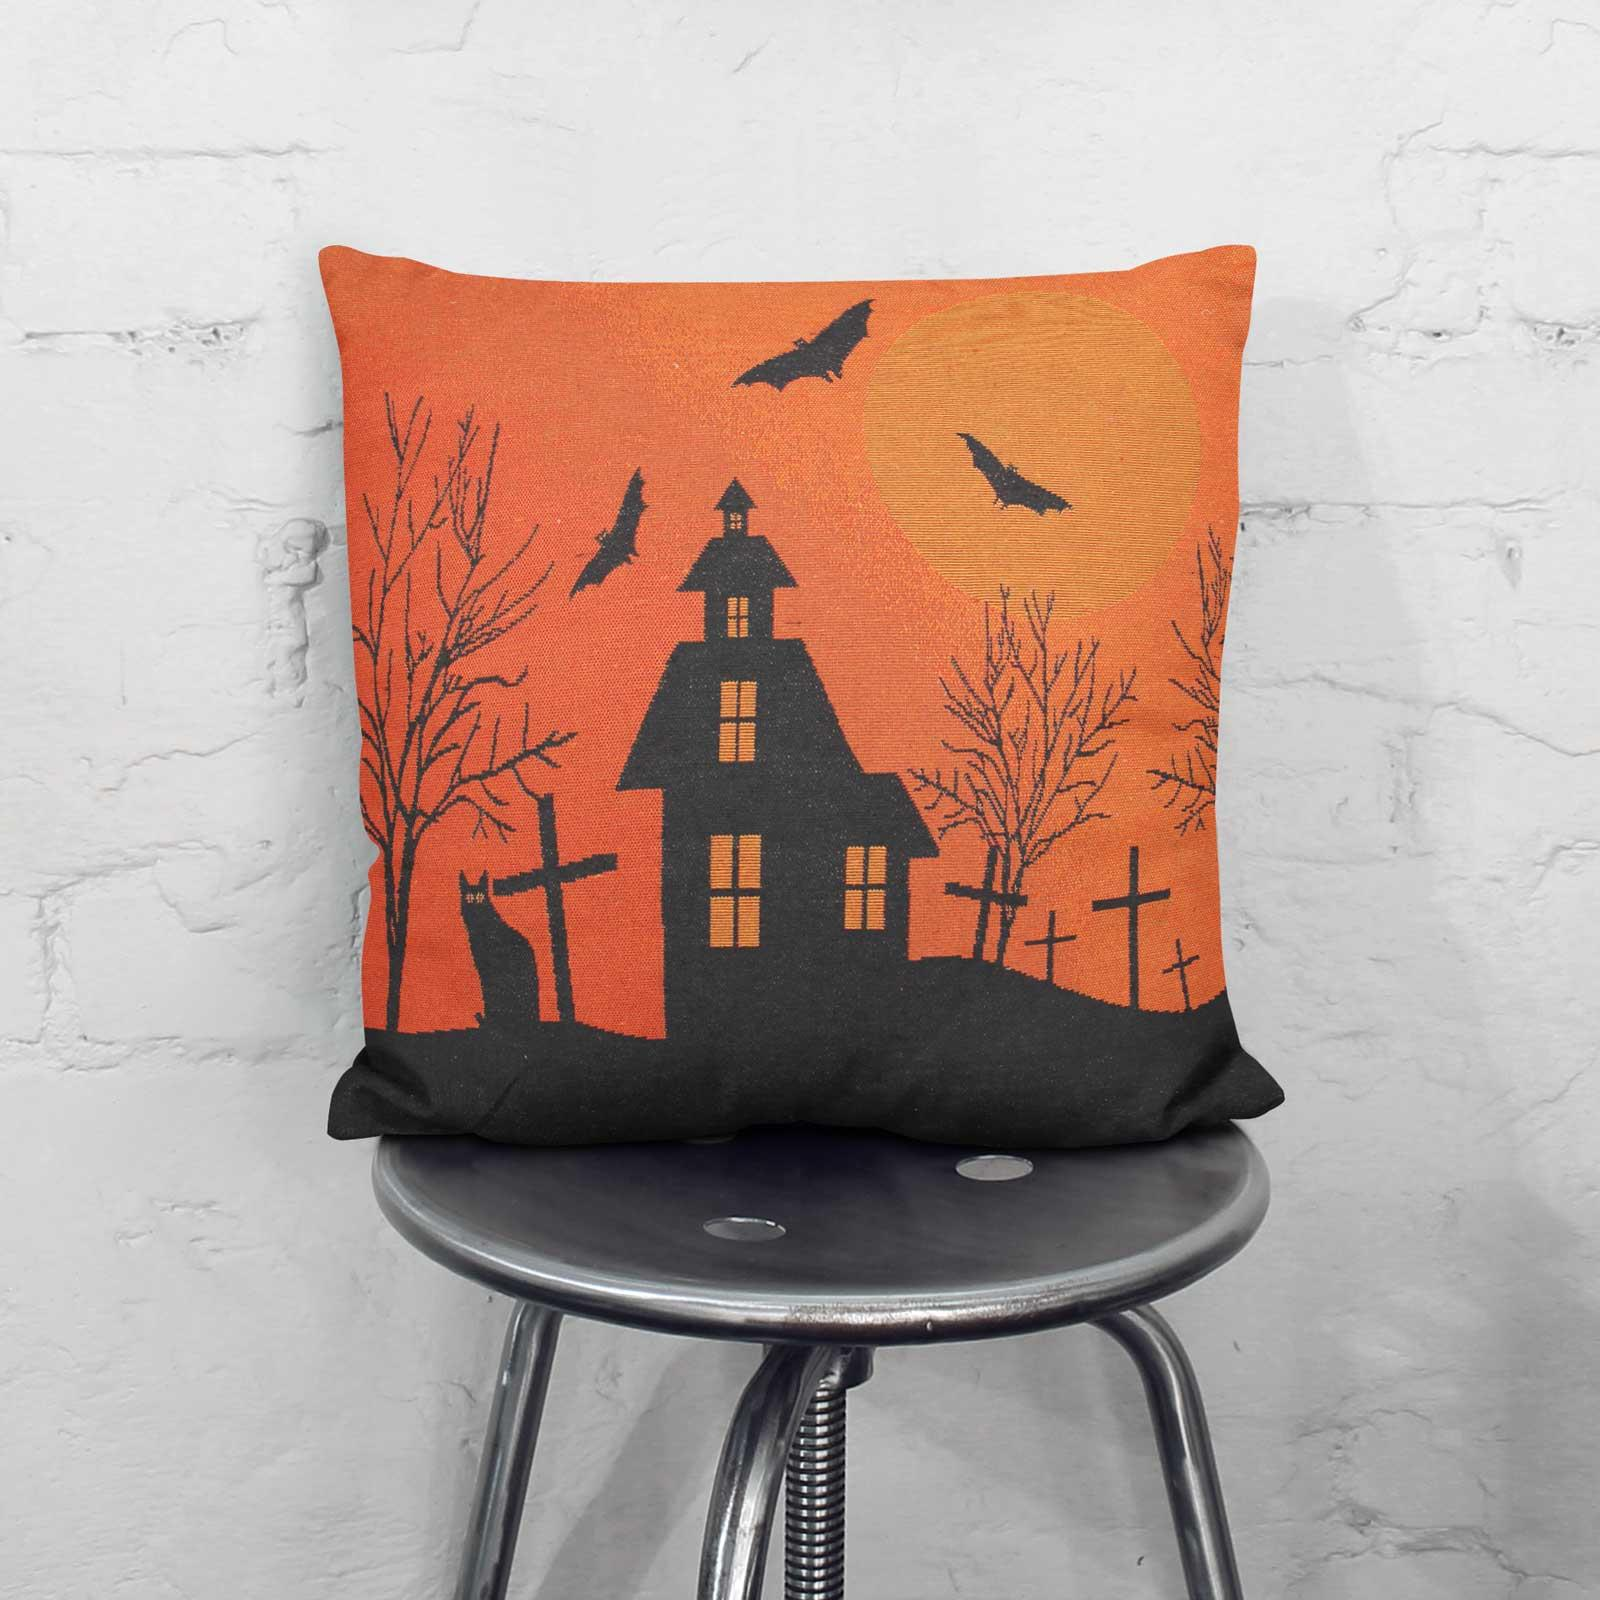 Tapestry-Cushion-Covers-Vintage-Pillow-Cover-Collection-18-034-45cm-Filled-Cushions thumbnail 66